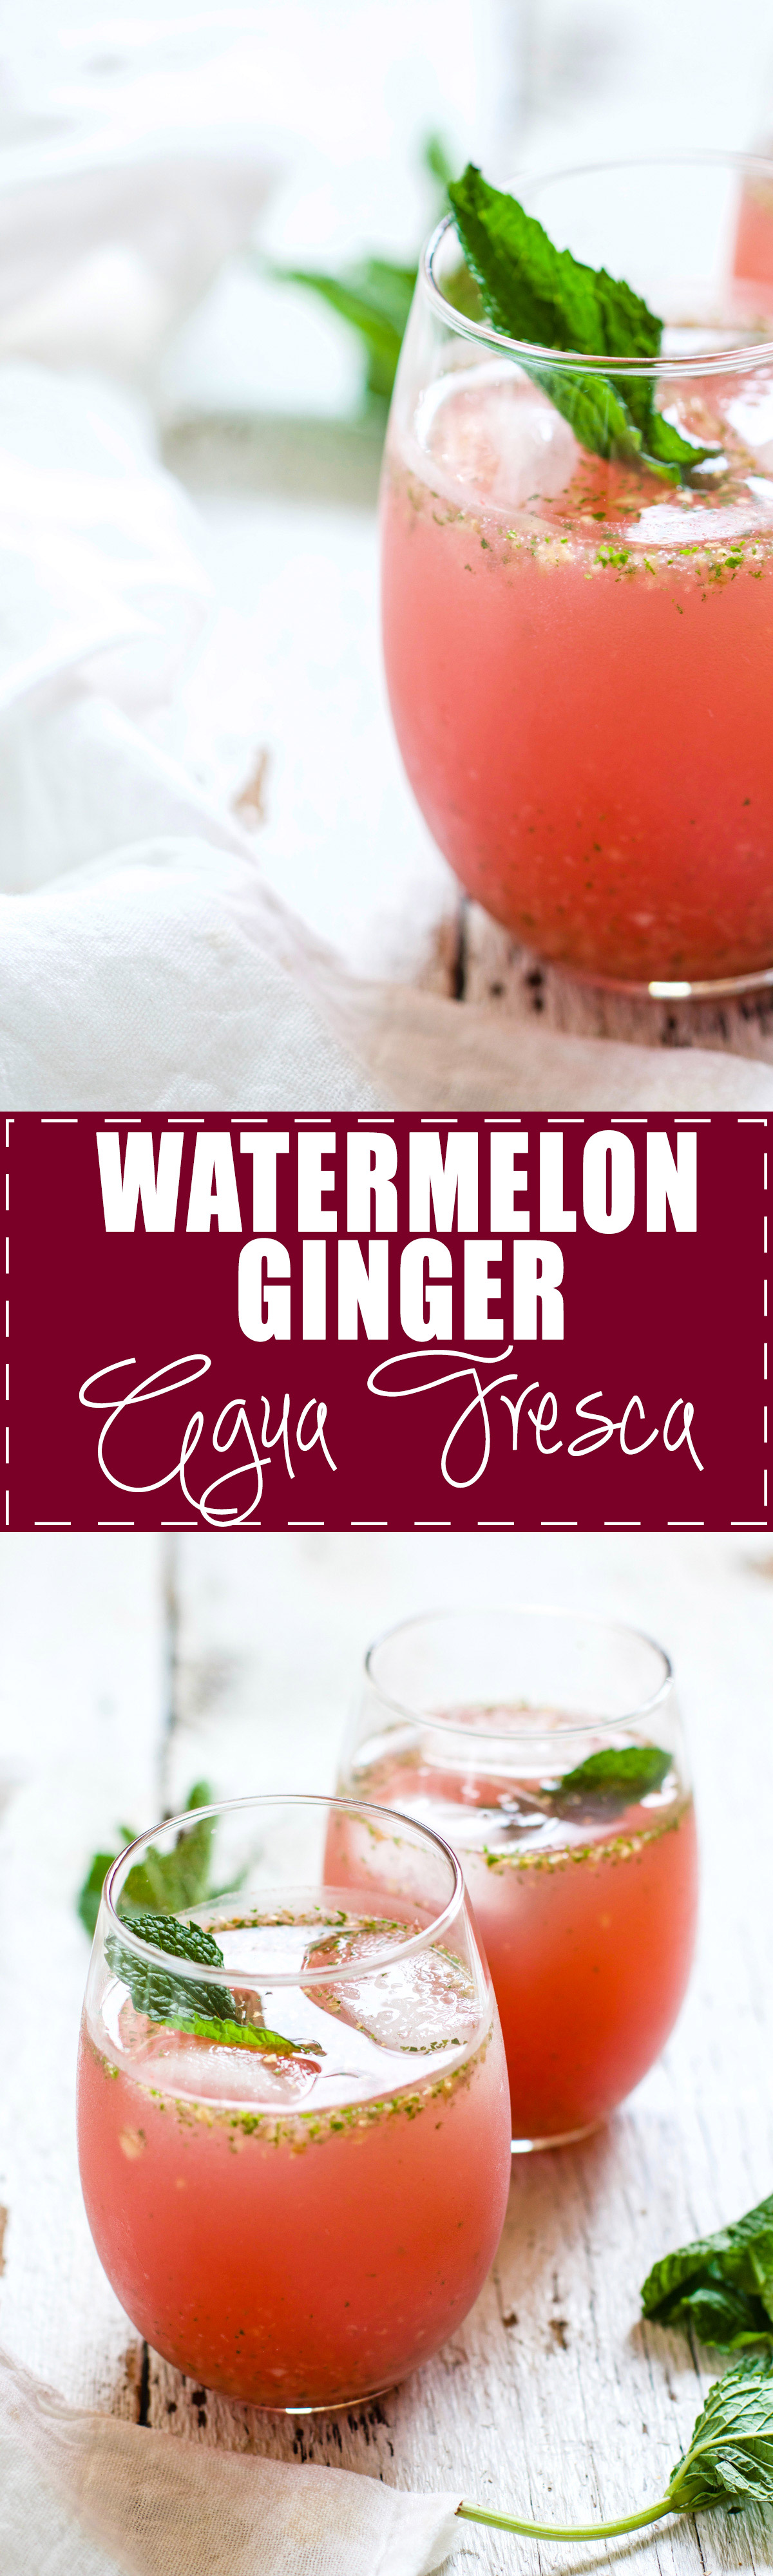 Watermelon Ginger Agua Fresca - SO refreshing and delicious, perfect for cooling down on a hot summer day. Watermelon, ginger, mint, lime, agave - blend it all up with water, chill, and serve. | rootsandradishes.com